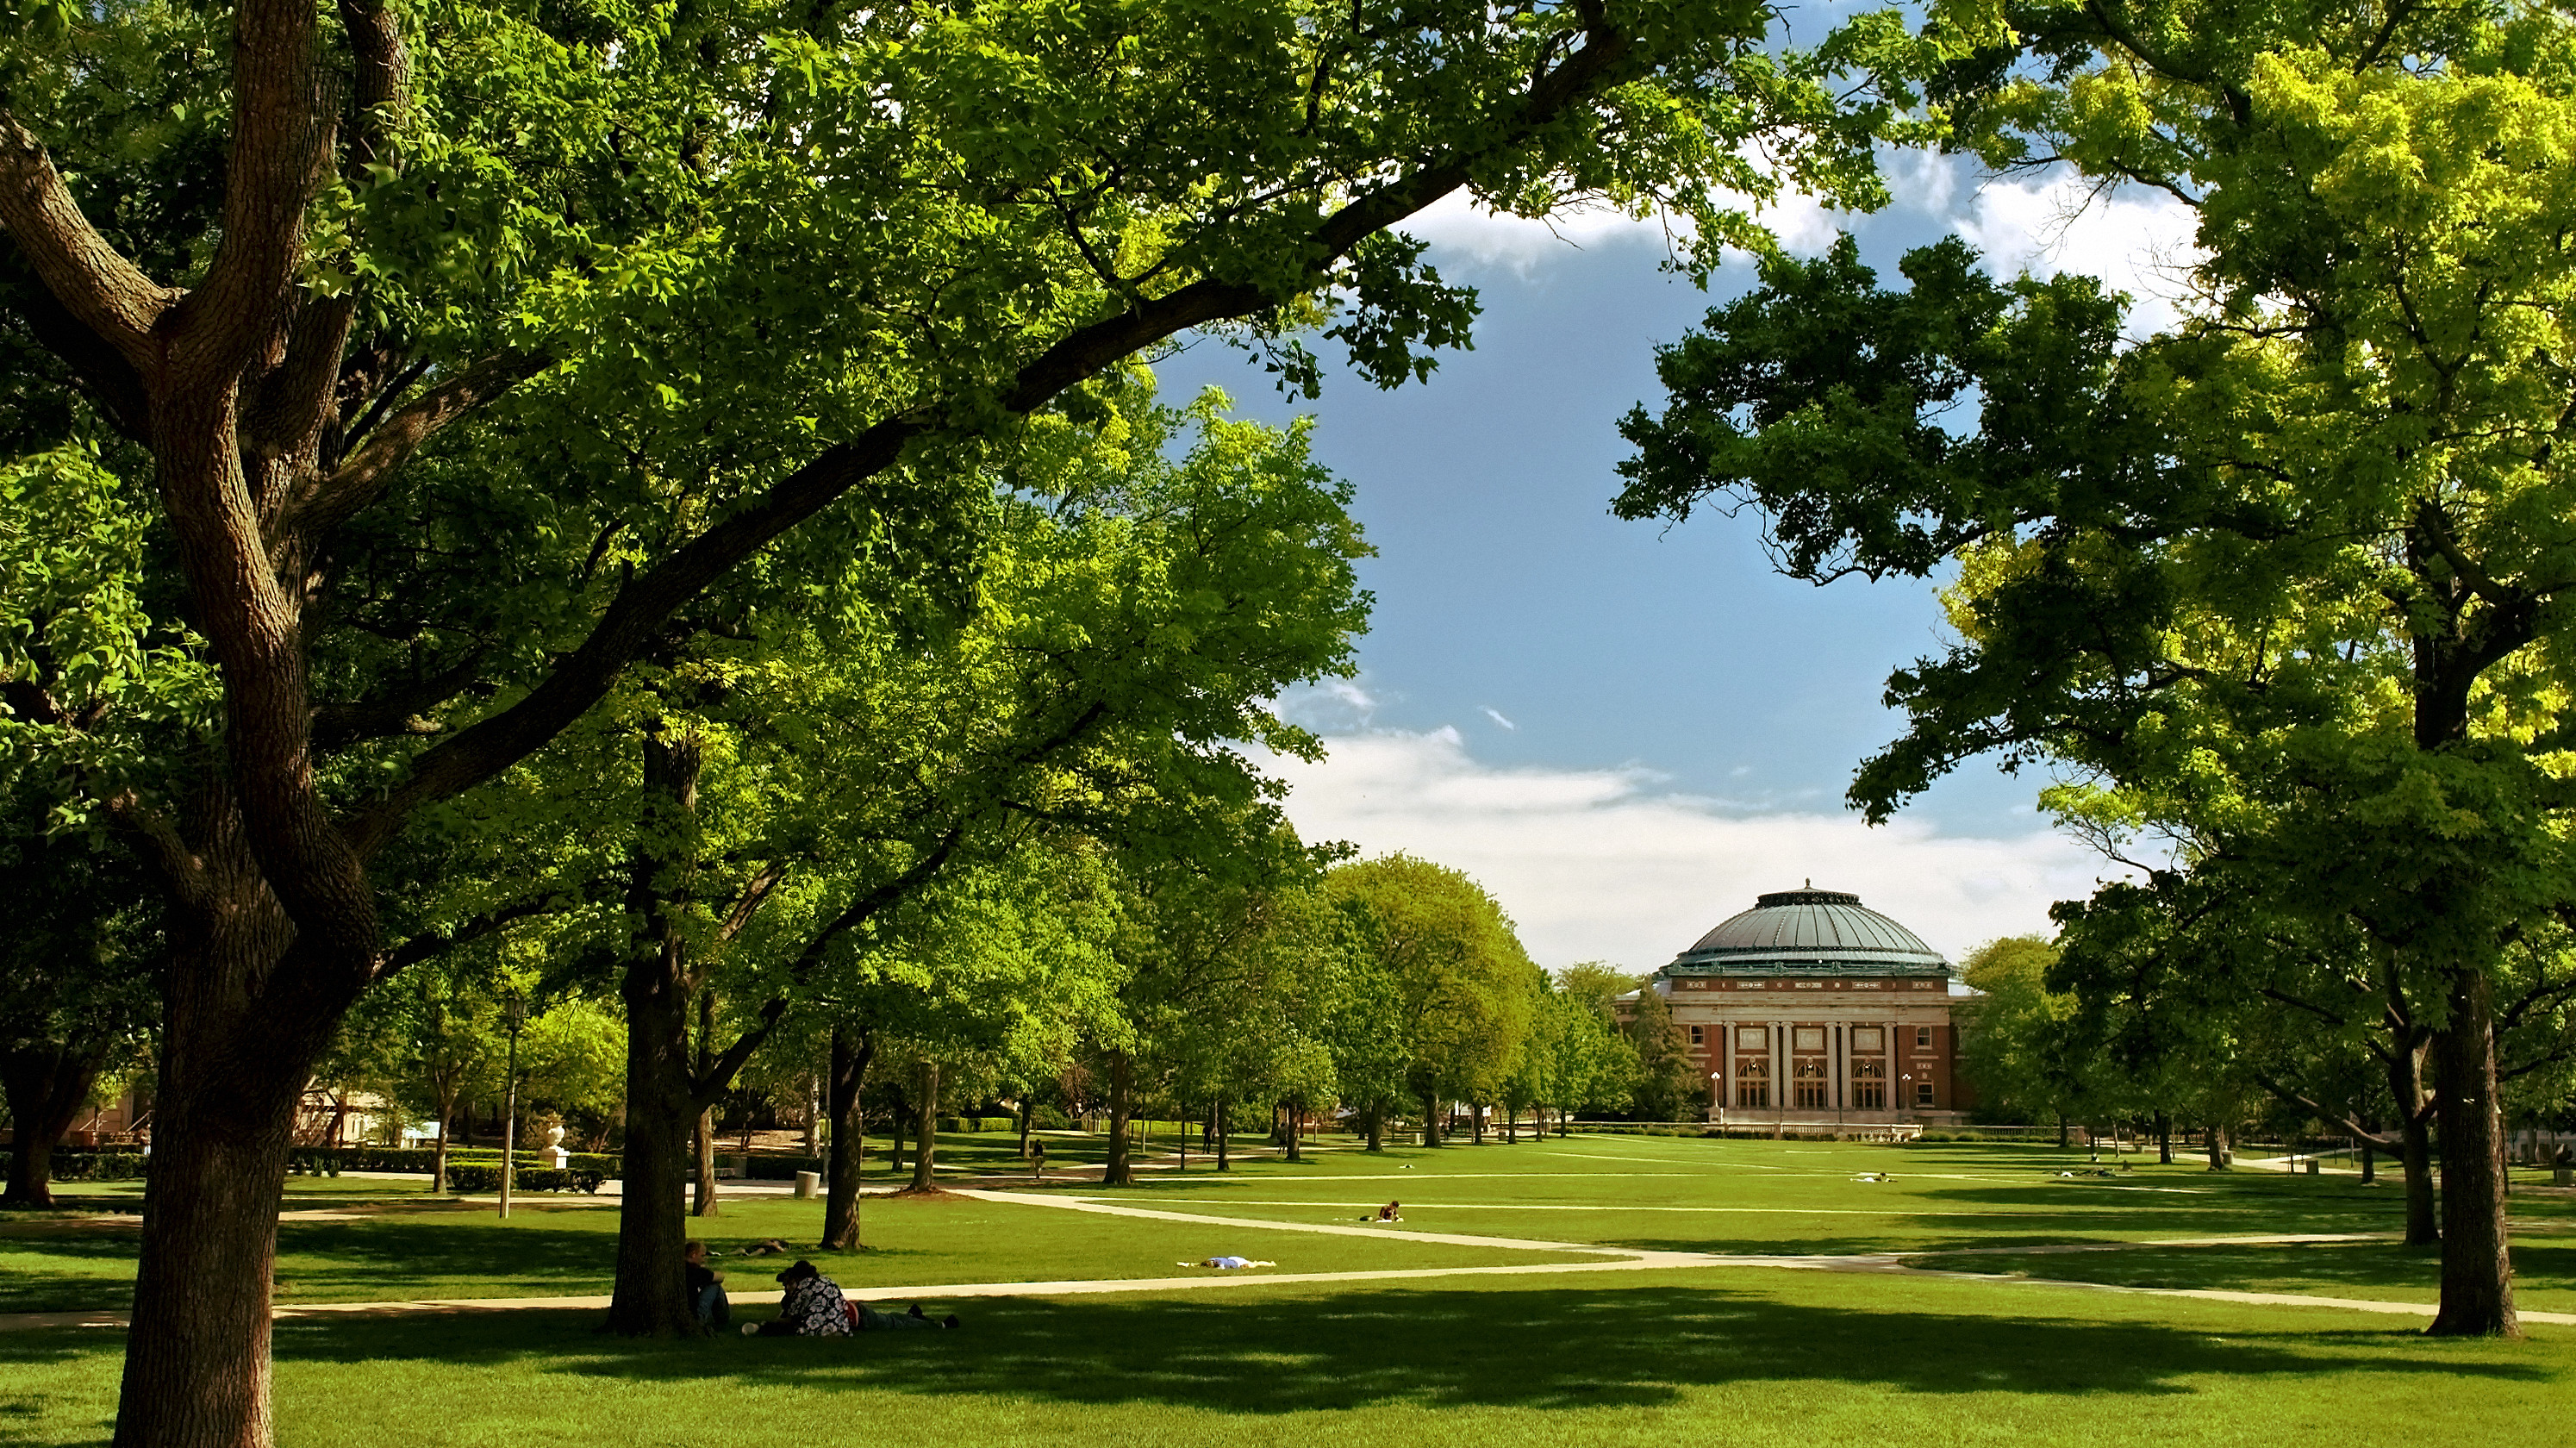 University of Illinois Desktop Wallpaper 70 images 2989x1680